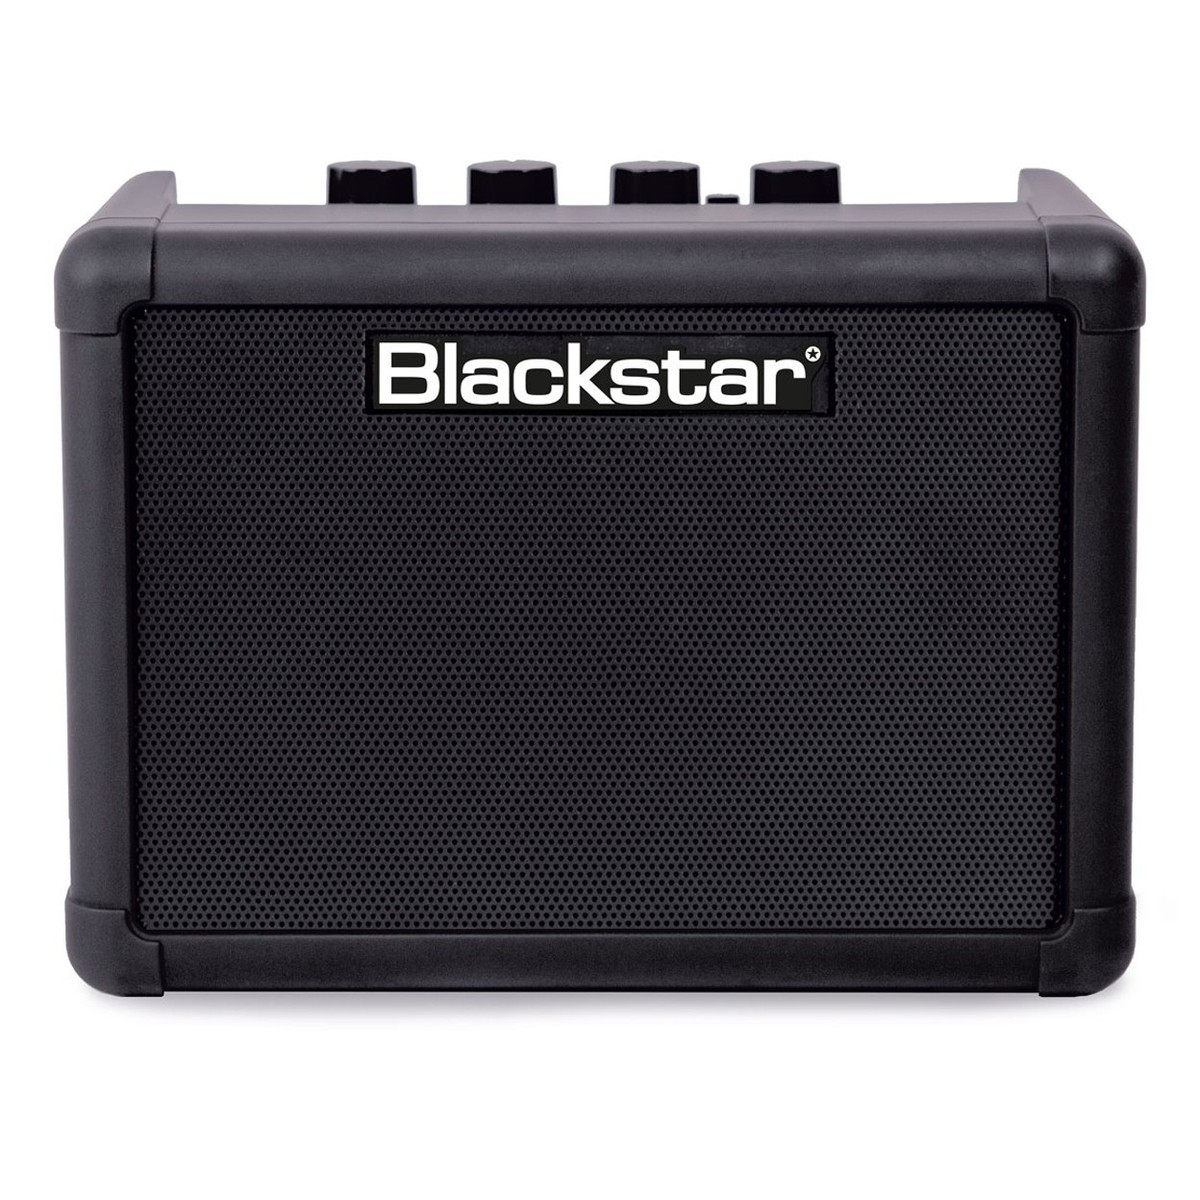 blackstar fly 3 bluetooth mini amp at gear4music. Black Bedroom Furniture Sets. Home Design Ideas